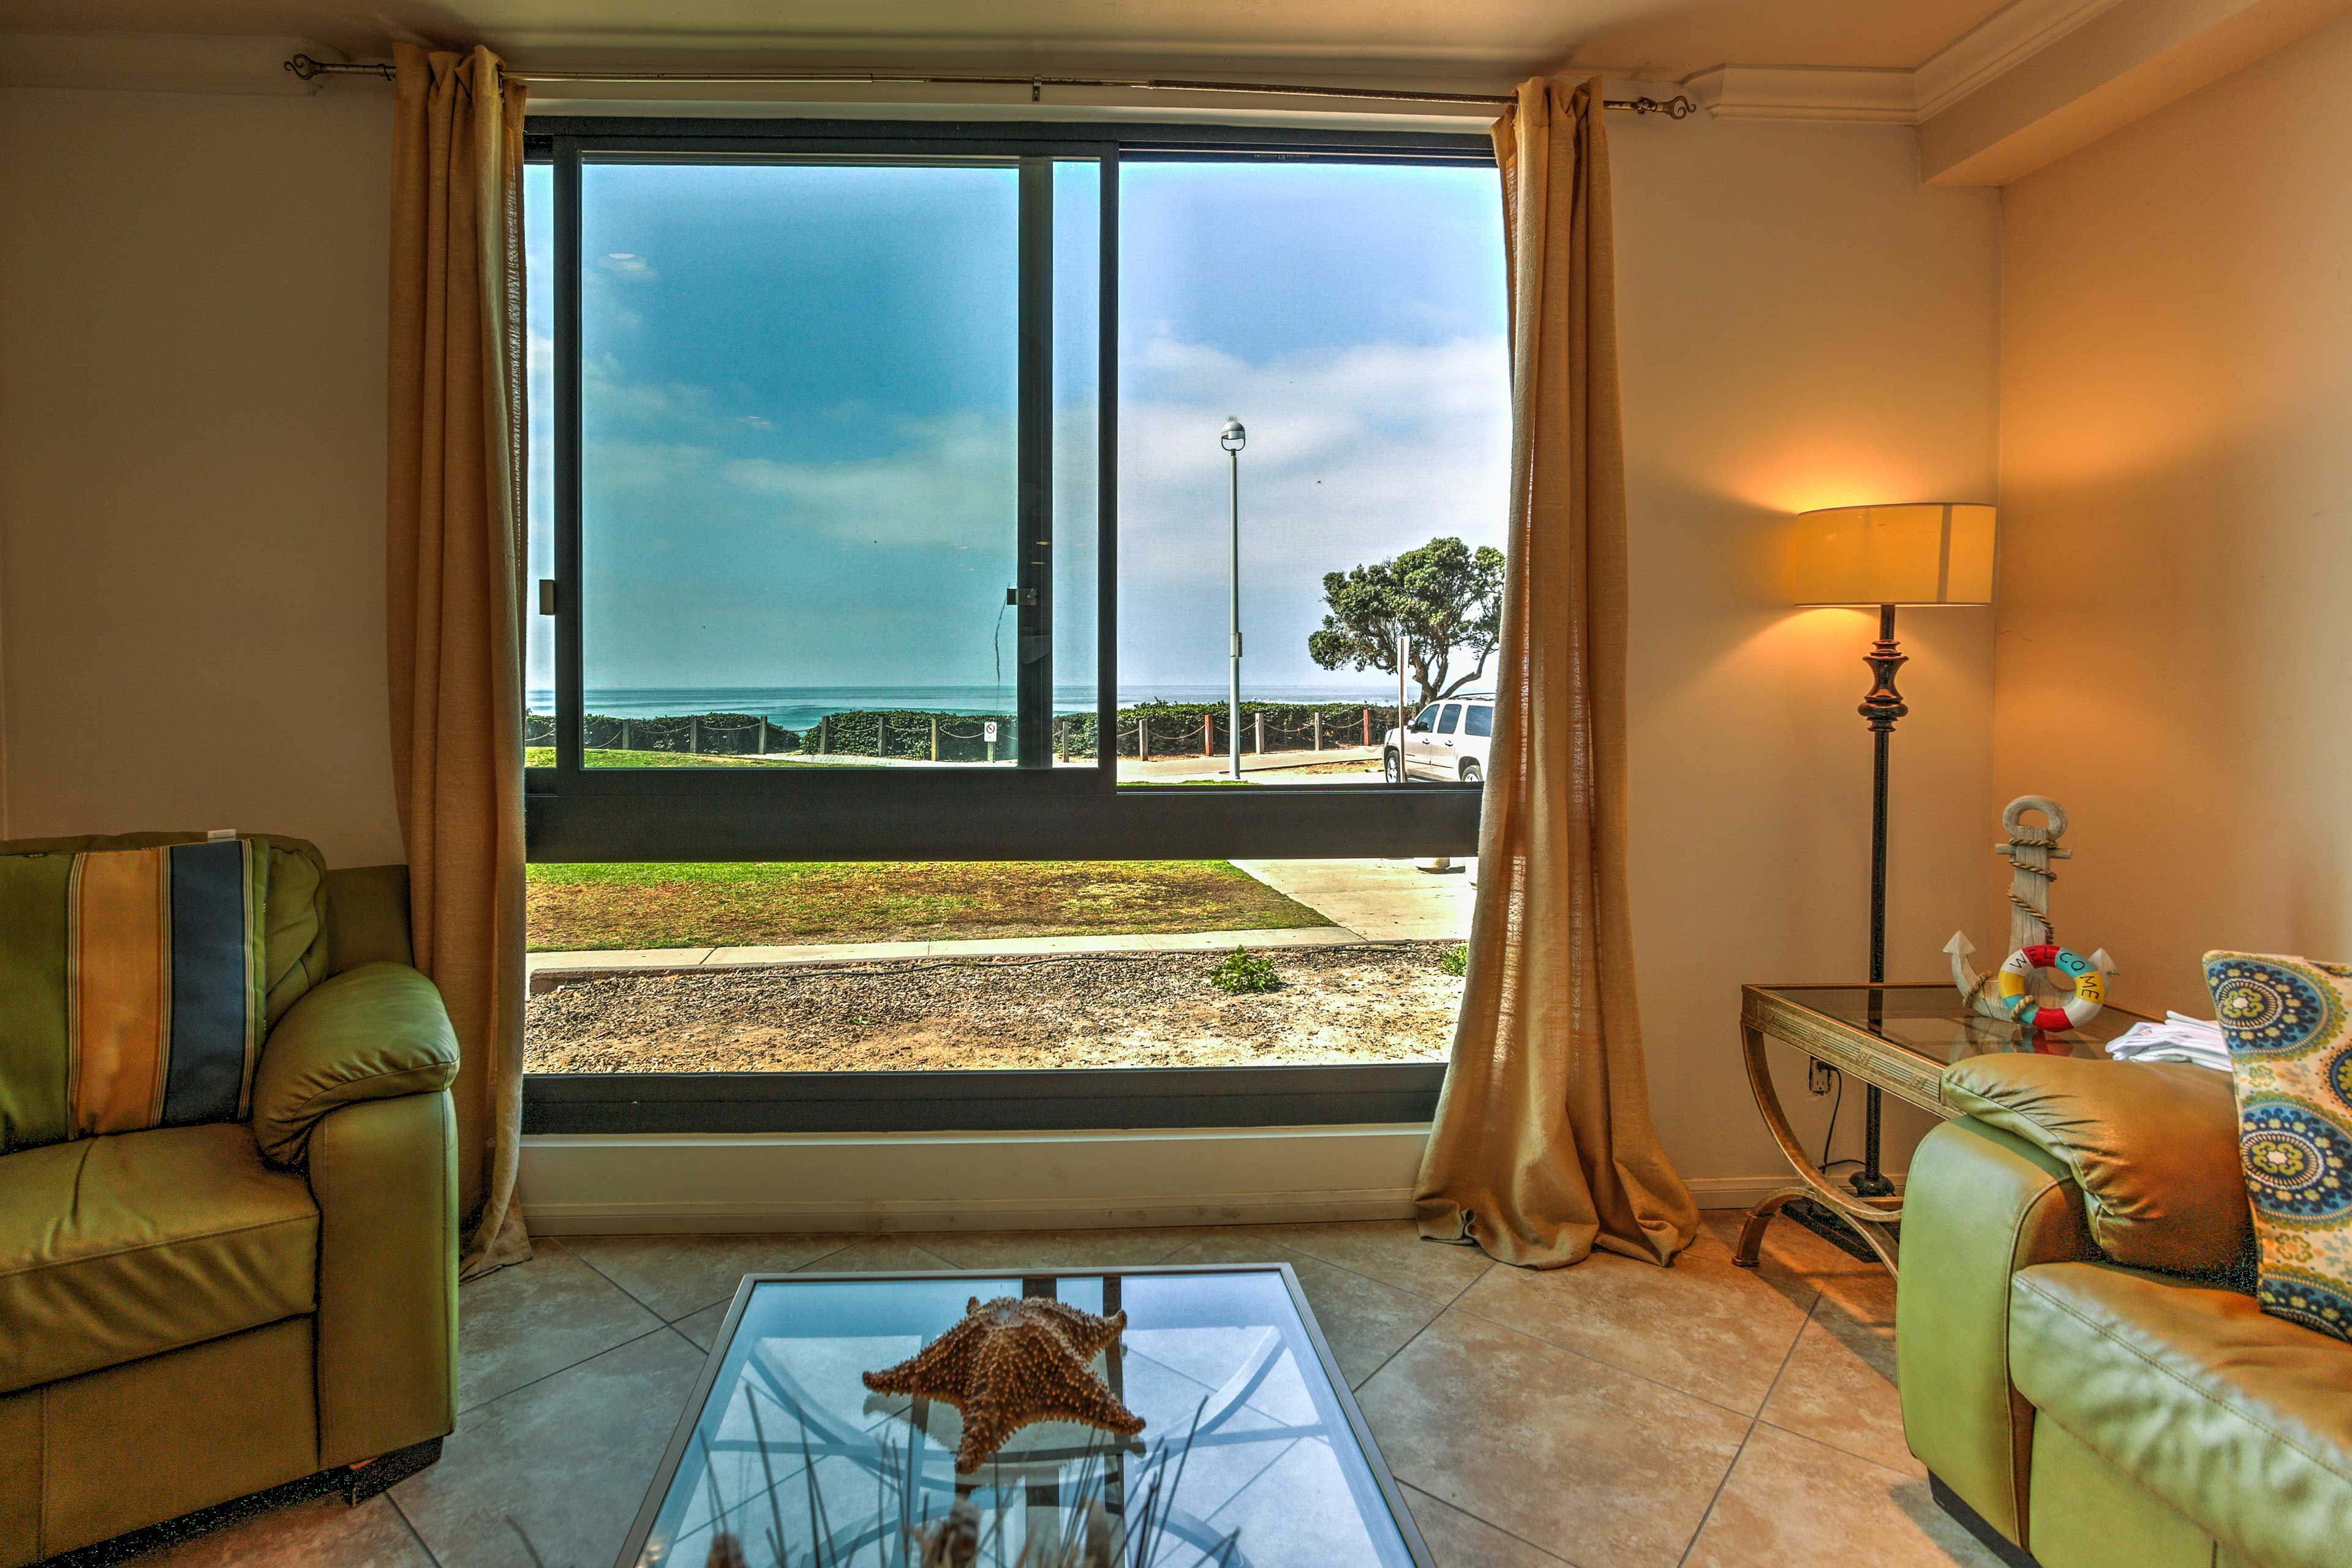 With an open floor plan, this condo ensures you can catch a view throughout!